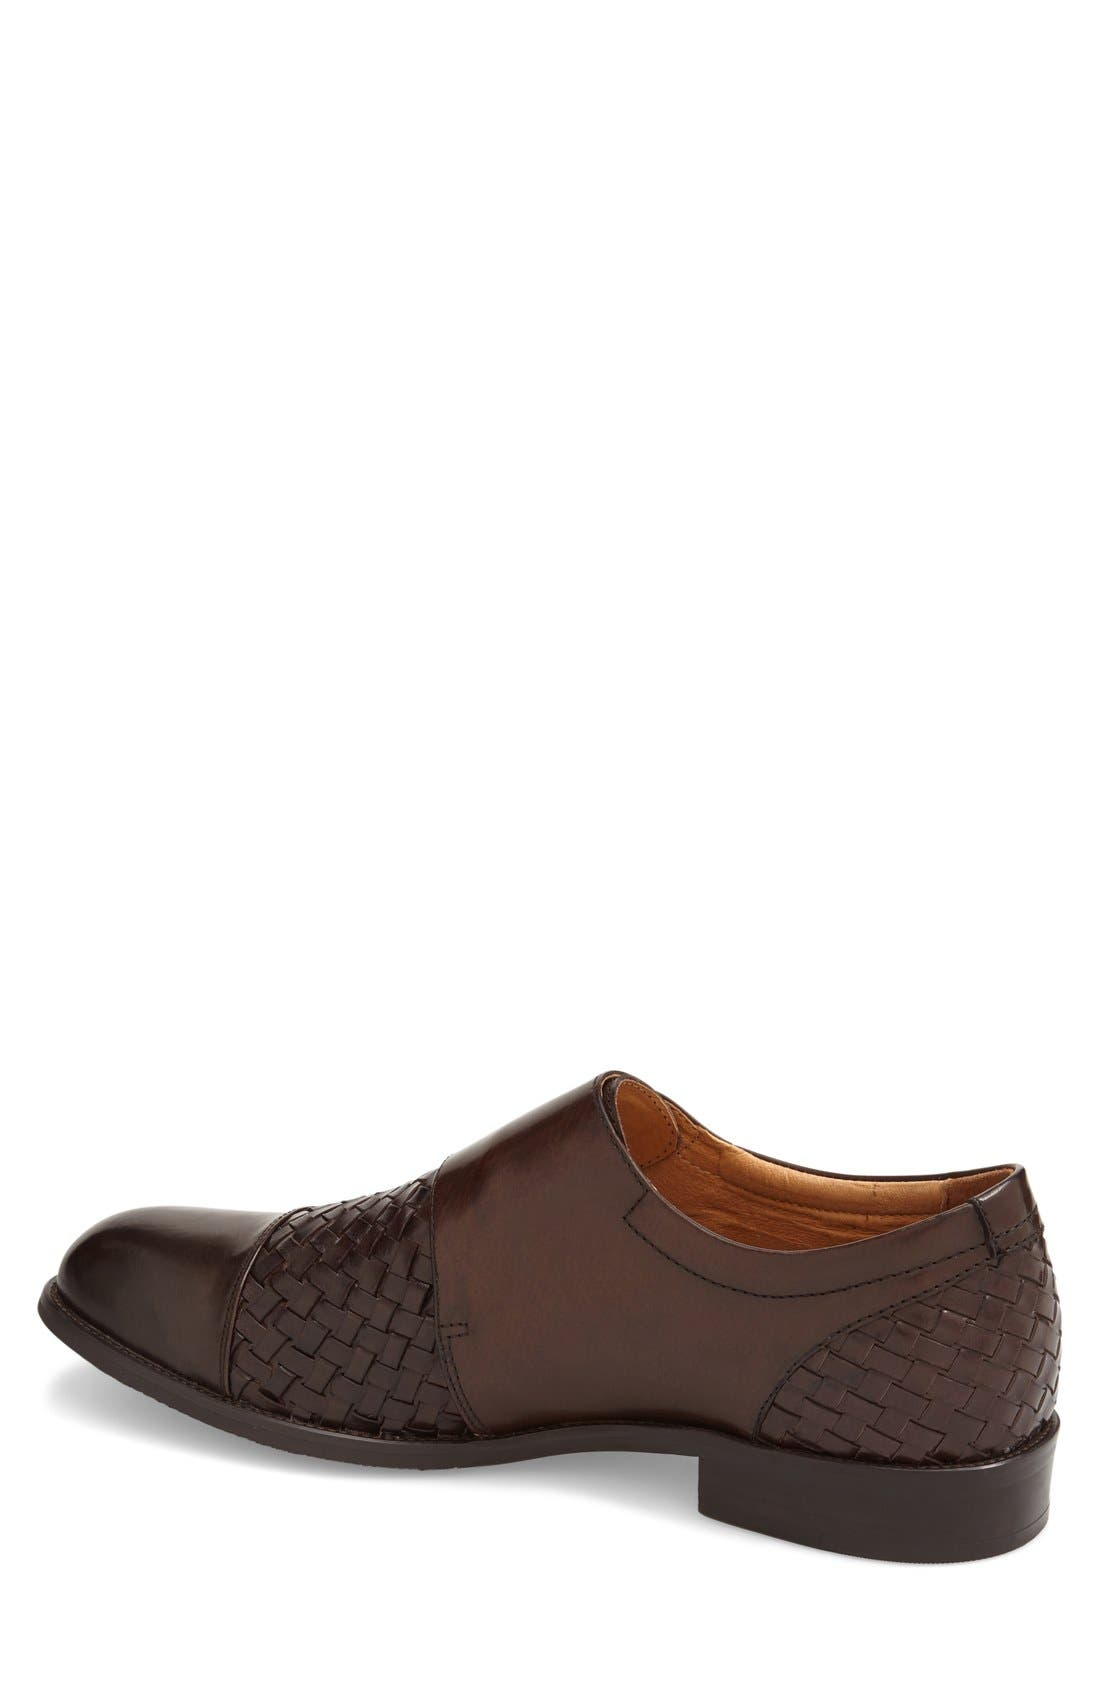 Alternate Image 2  - Zanzara 'Mahler' Monk Strap Shoe (Men)